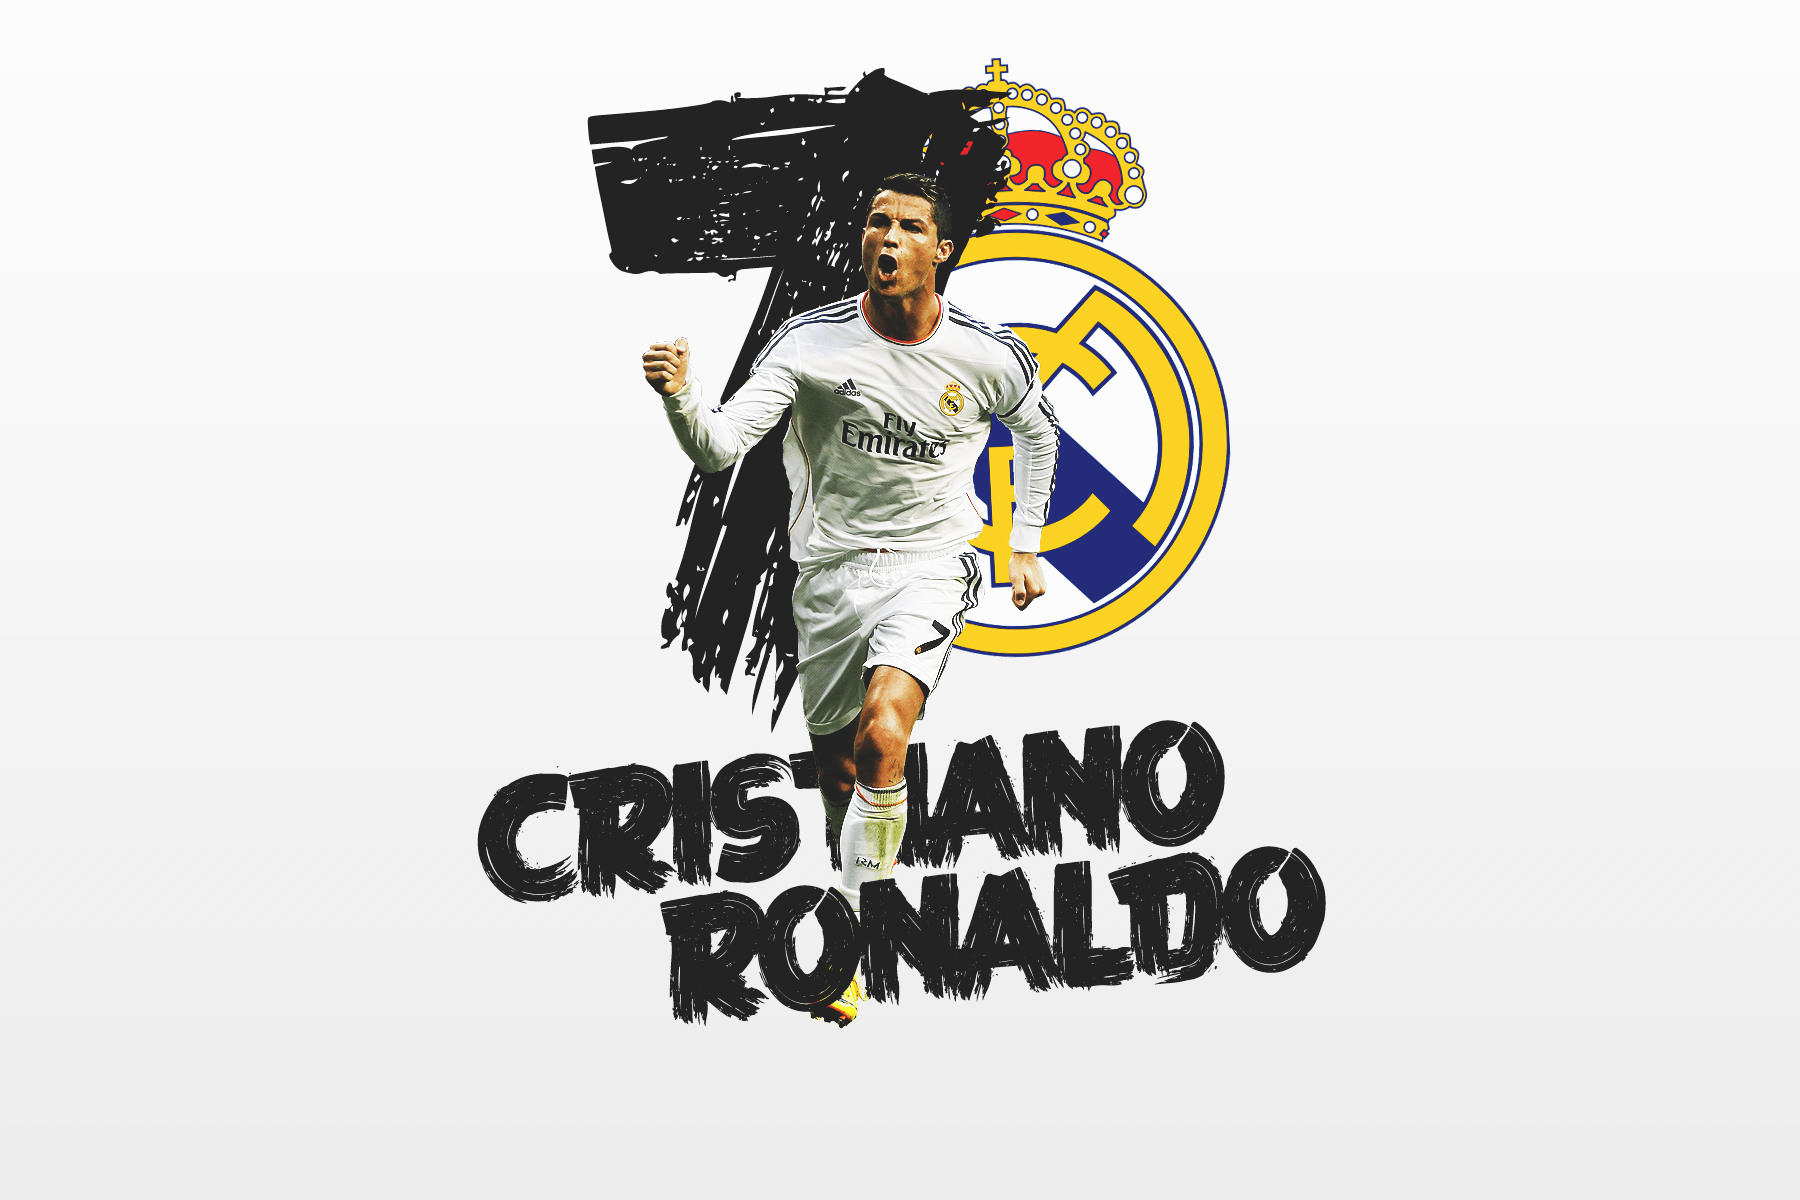 Cr7 wallpapers terbaru 2016 wallpaper cave - Christiano ronaldo logo ...